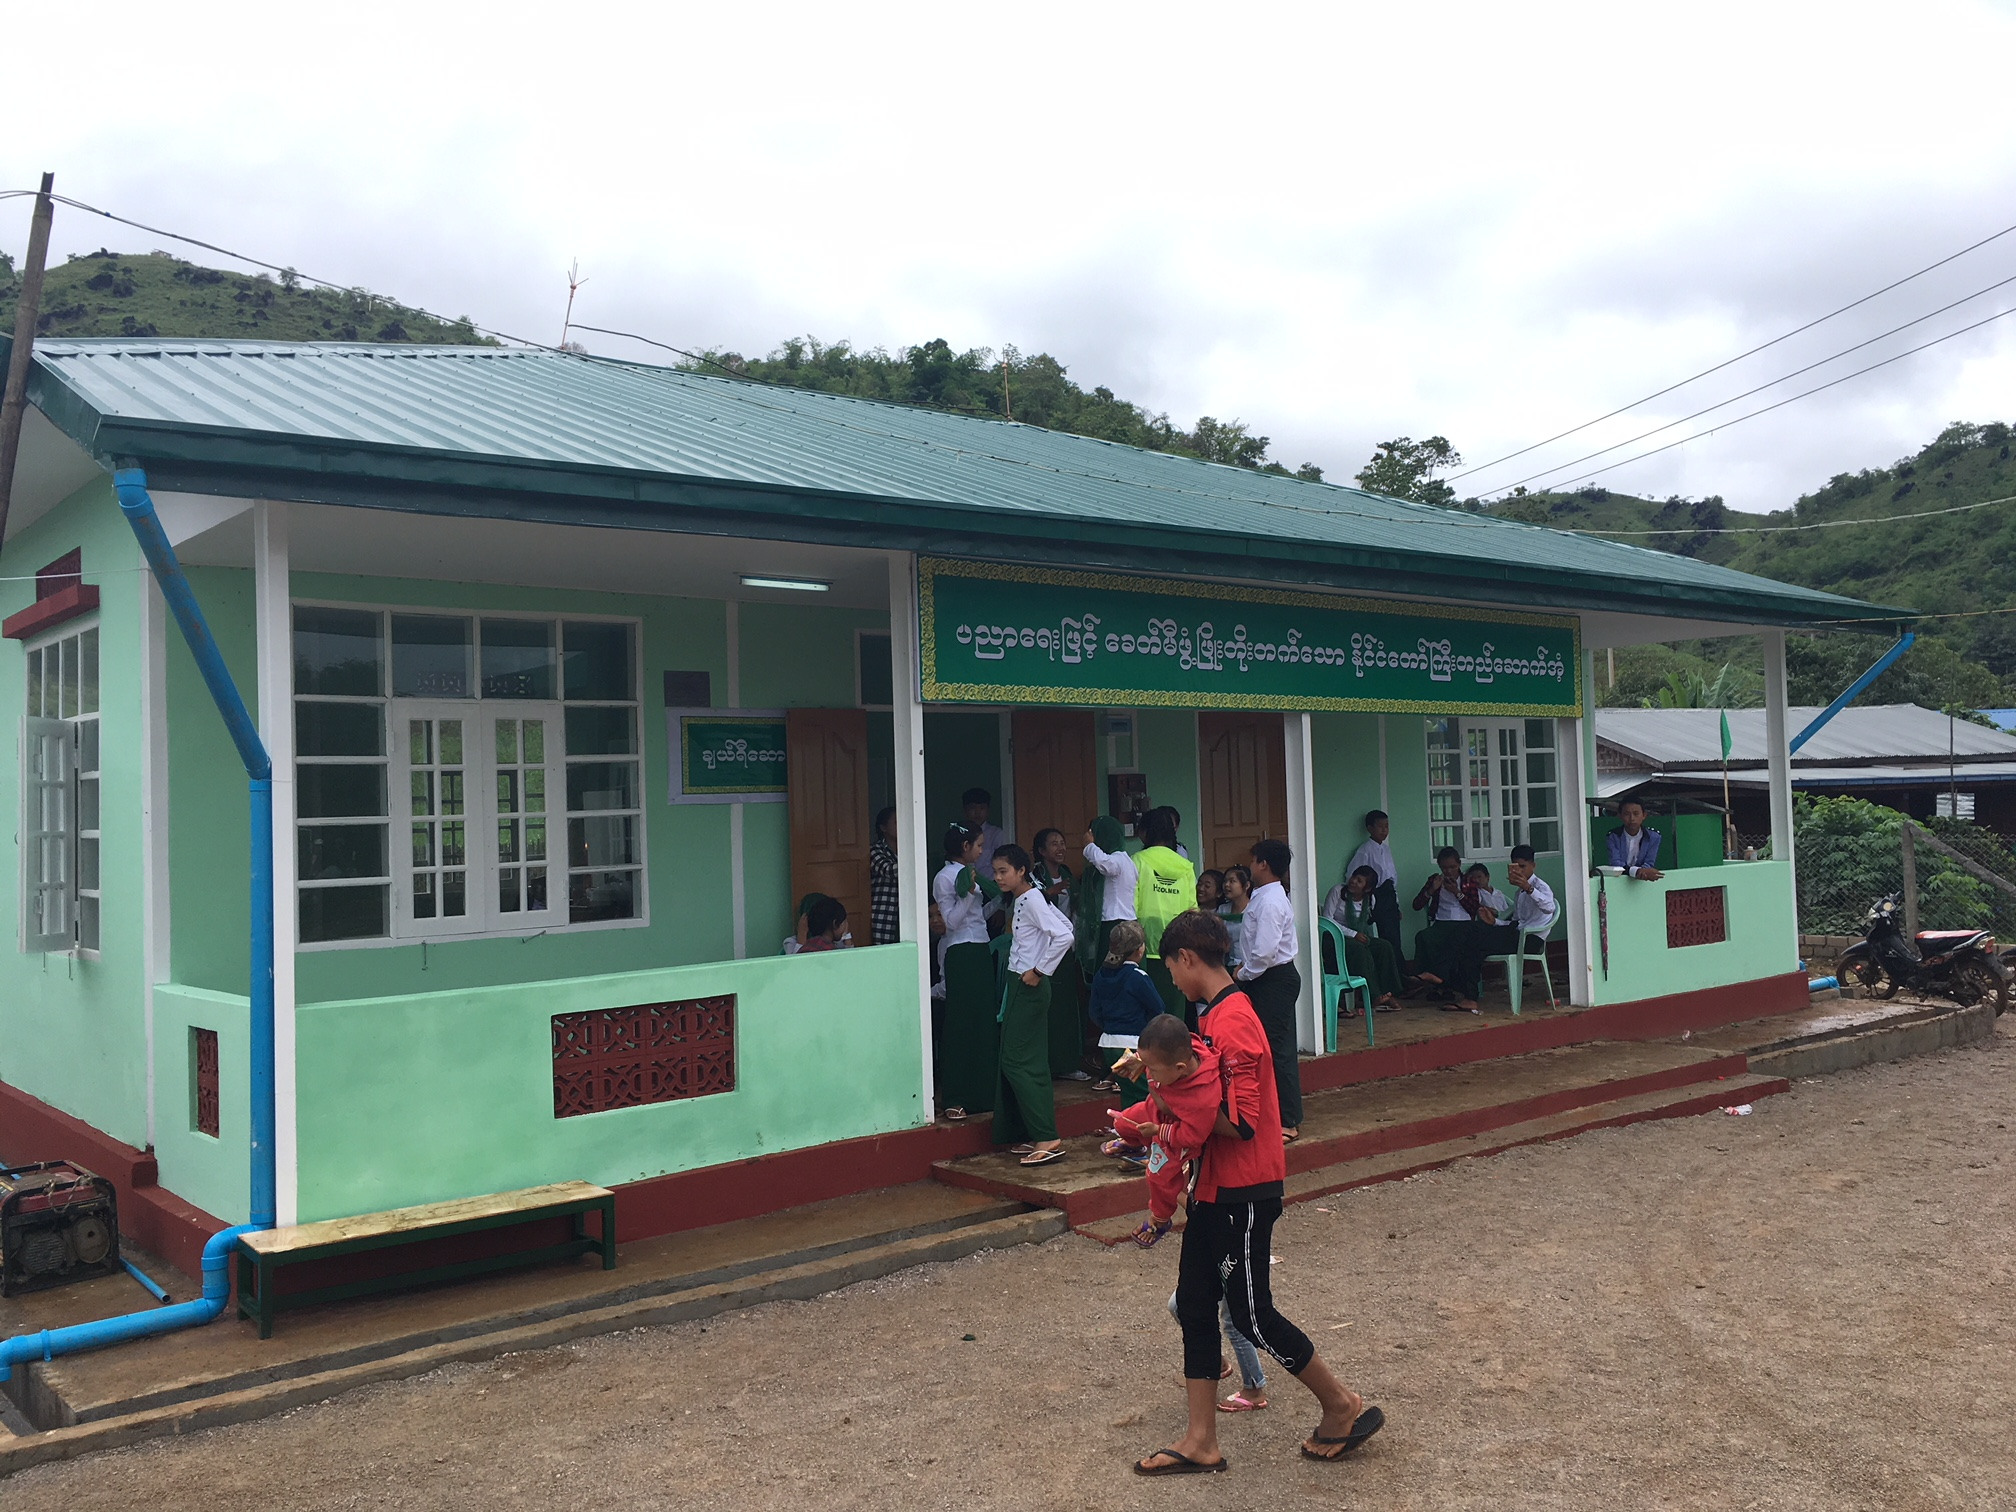 Pupils standing infront of the school building